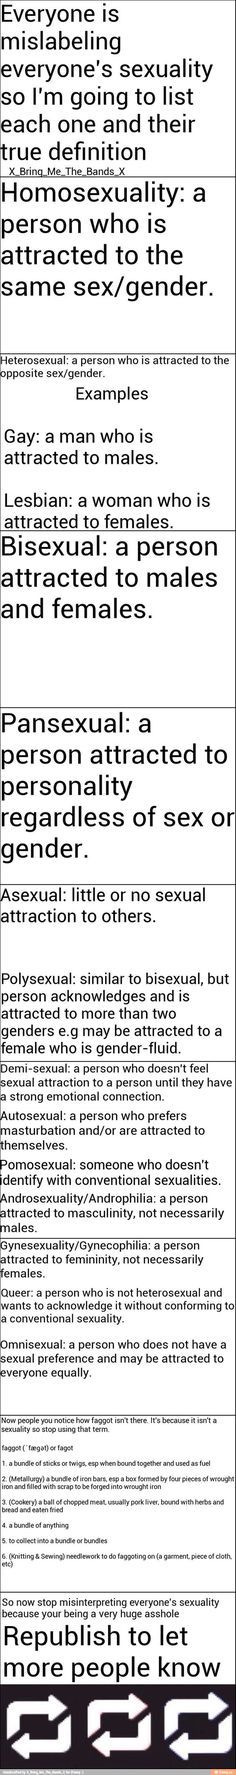 """Honesty tho ppl always say mean things about being """"gay"""" like its an insult , lets change that:"""